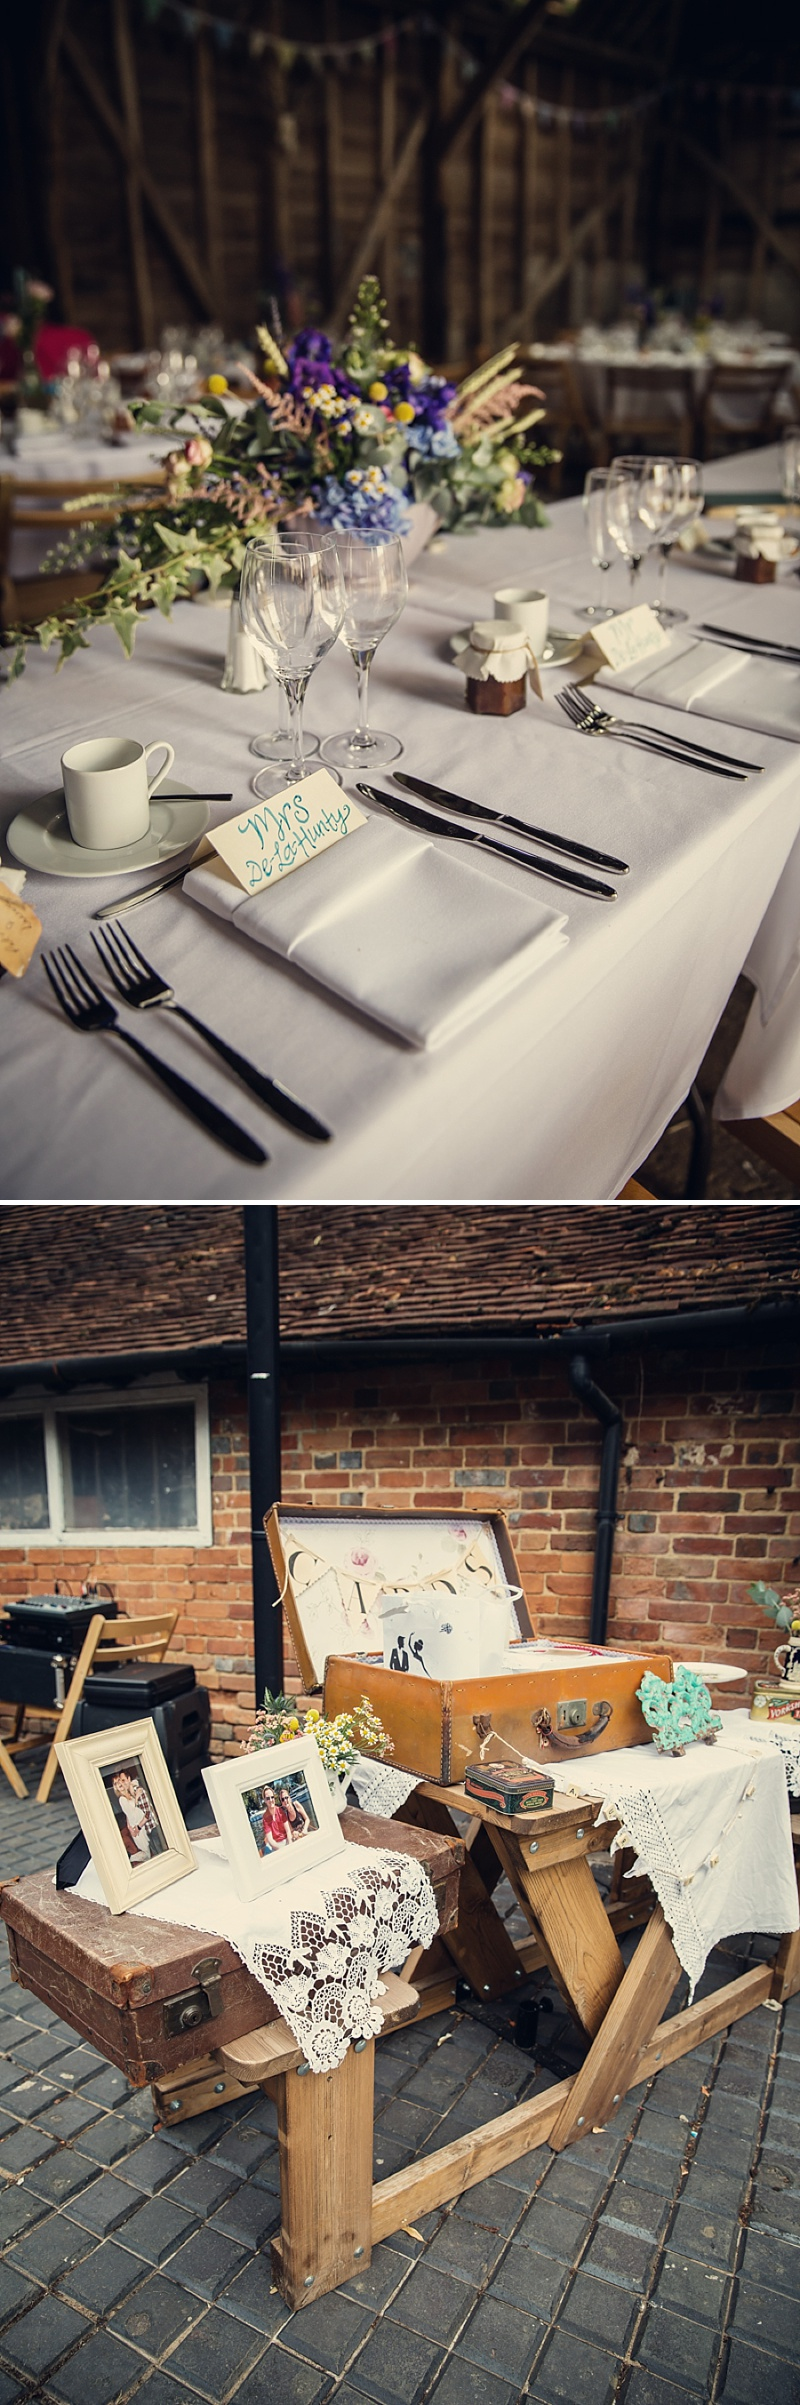 A Rustic Farm Wedding In Berkshire With Bride In Kelly By Stephanie Allin And Bridemaids In Mint Green With A Chocolate Wedding Cake From M&S Images From Assassynation_0012